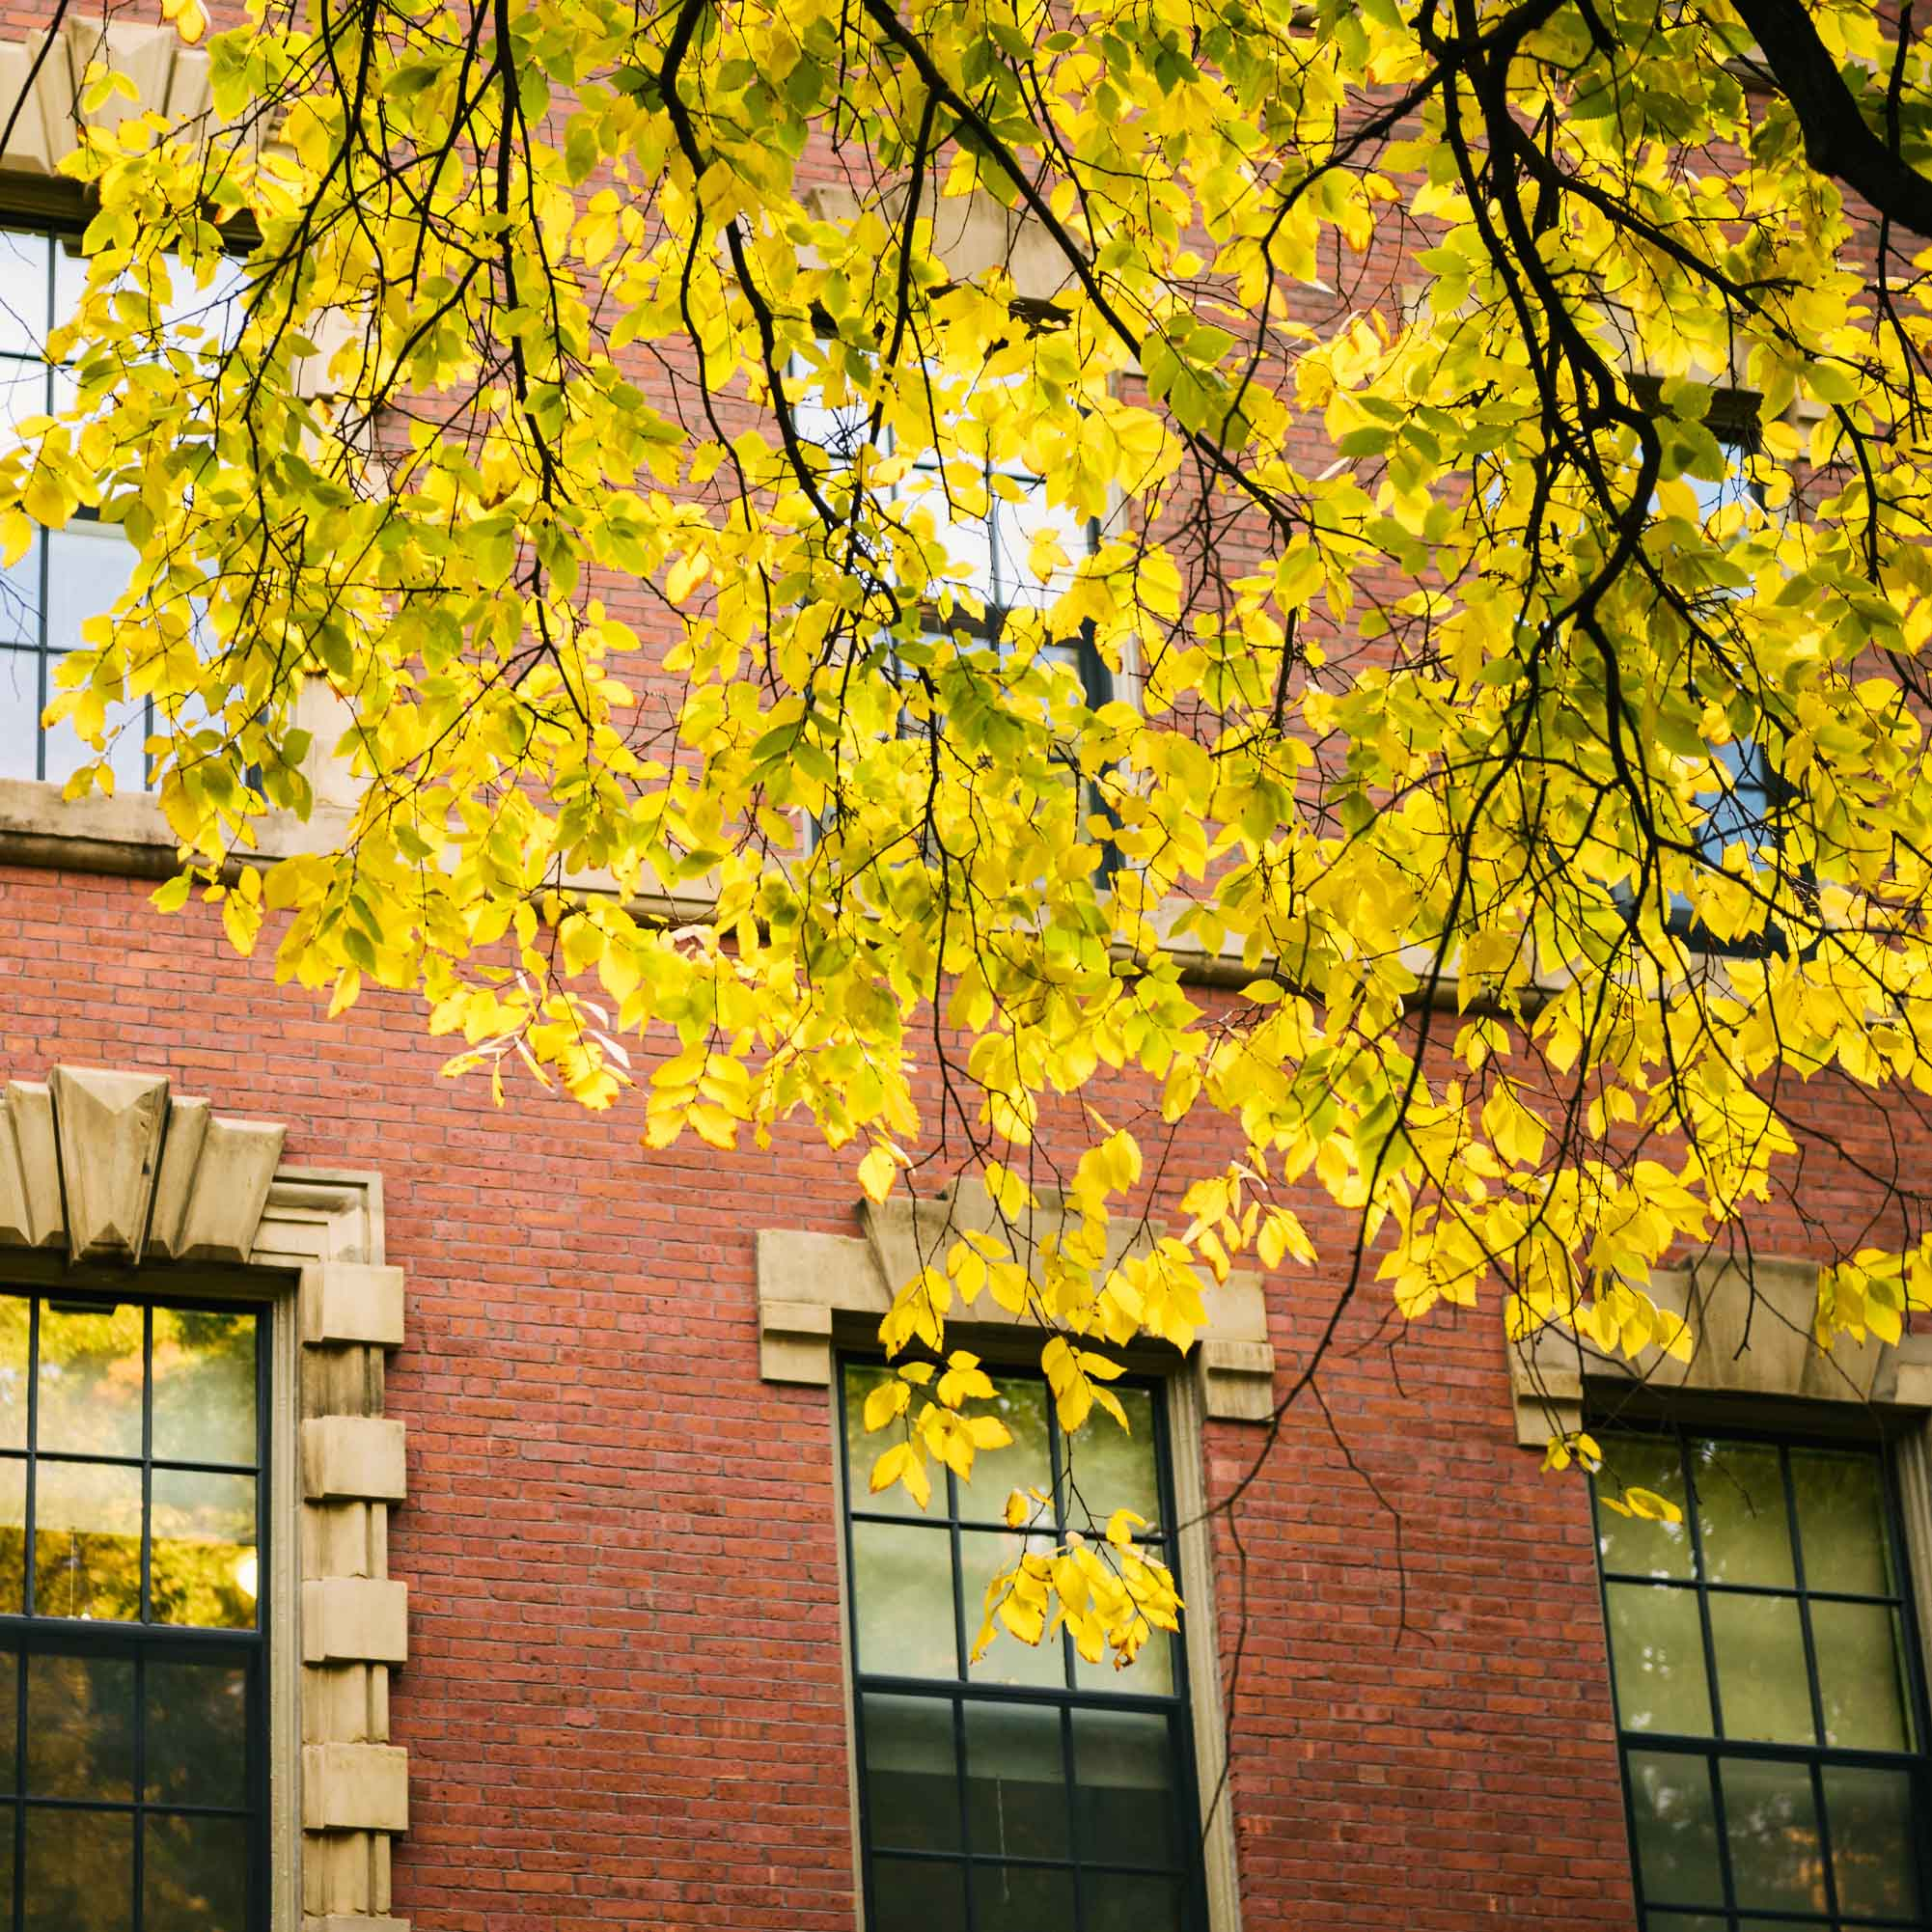 yellow-elm-leaf-harvard-yard.jpg